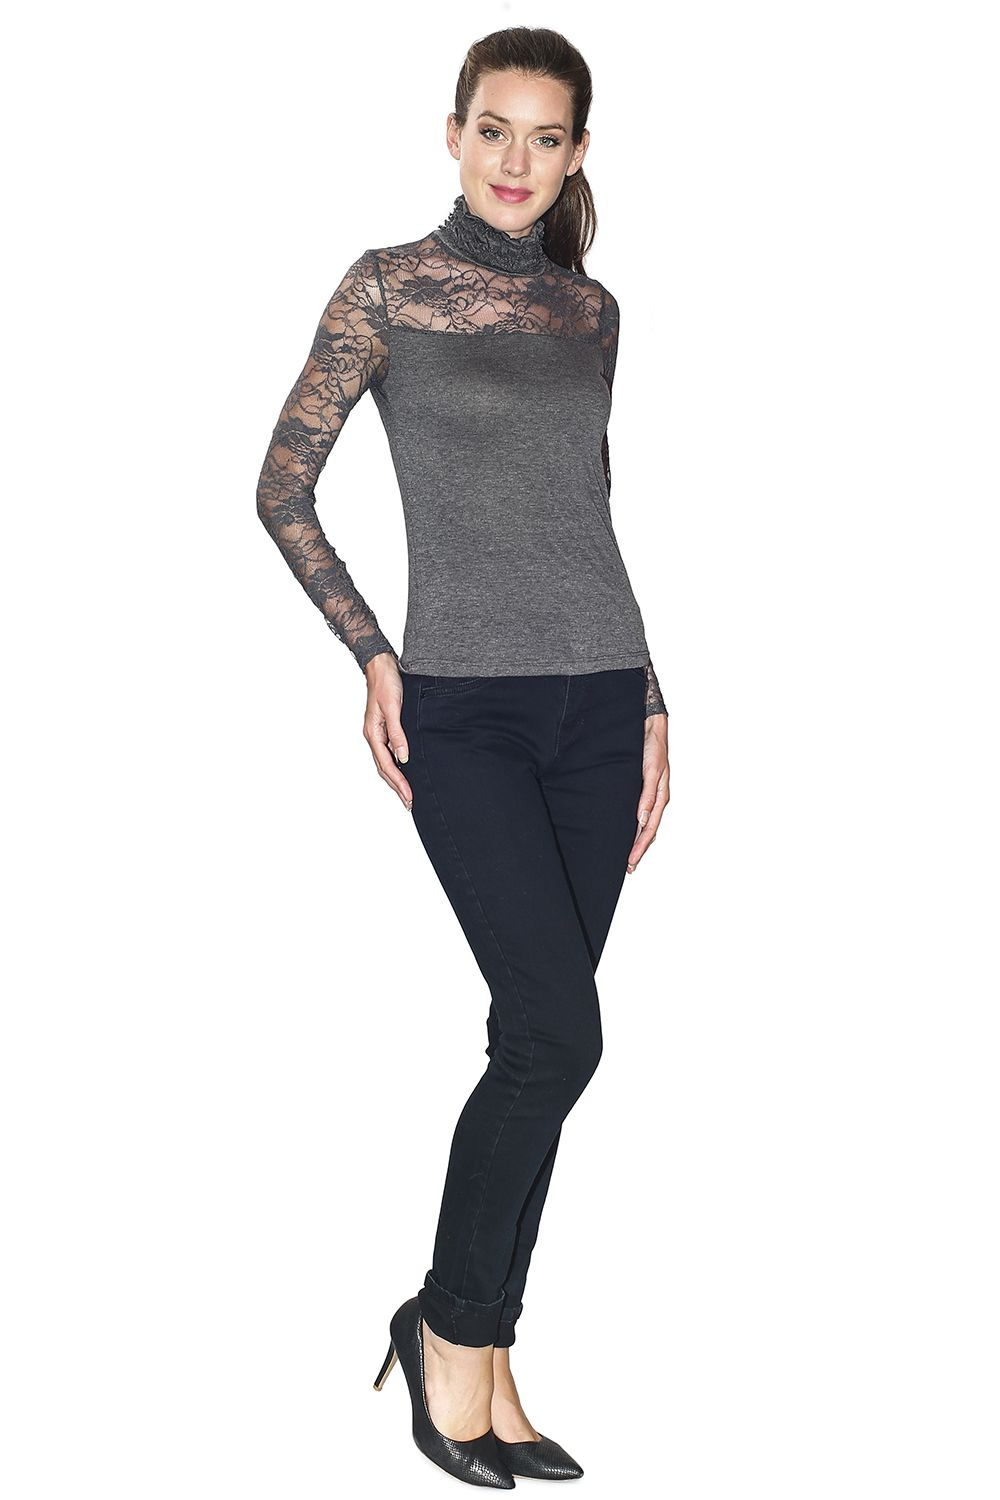 Assuili Ruffle Neck Long Sleeve Lace Top in Grey